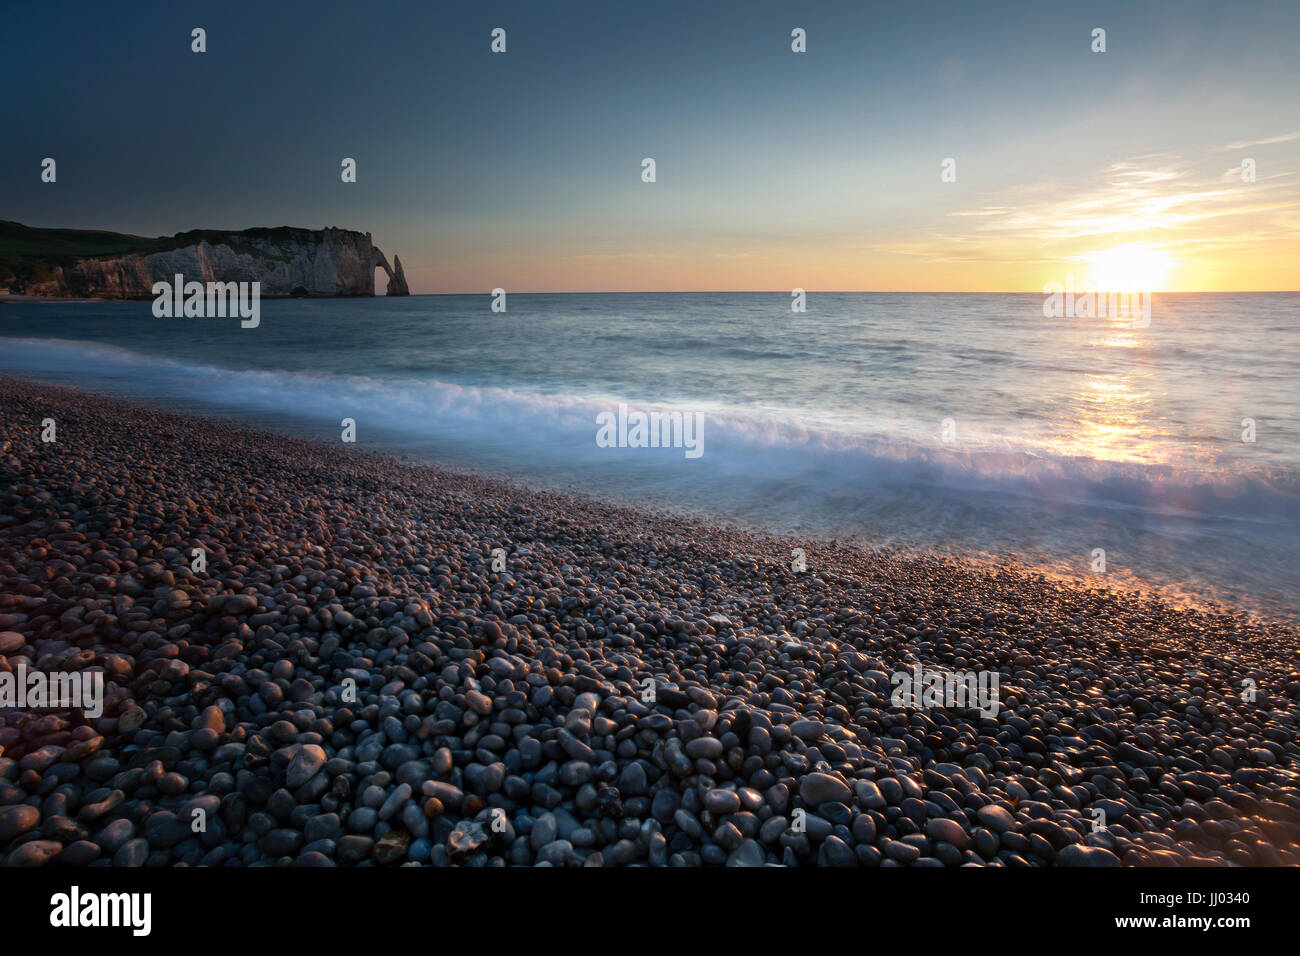 Sunset at Etretat beach - Stock Image